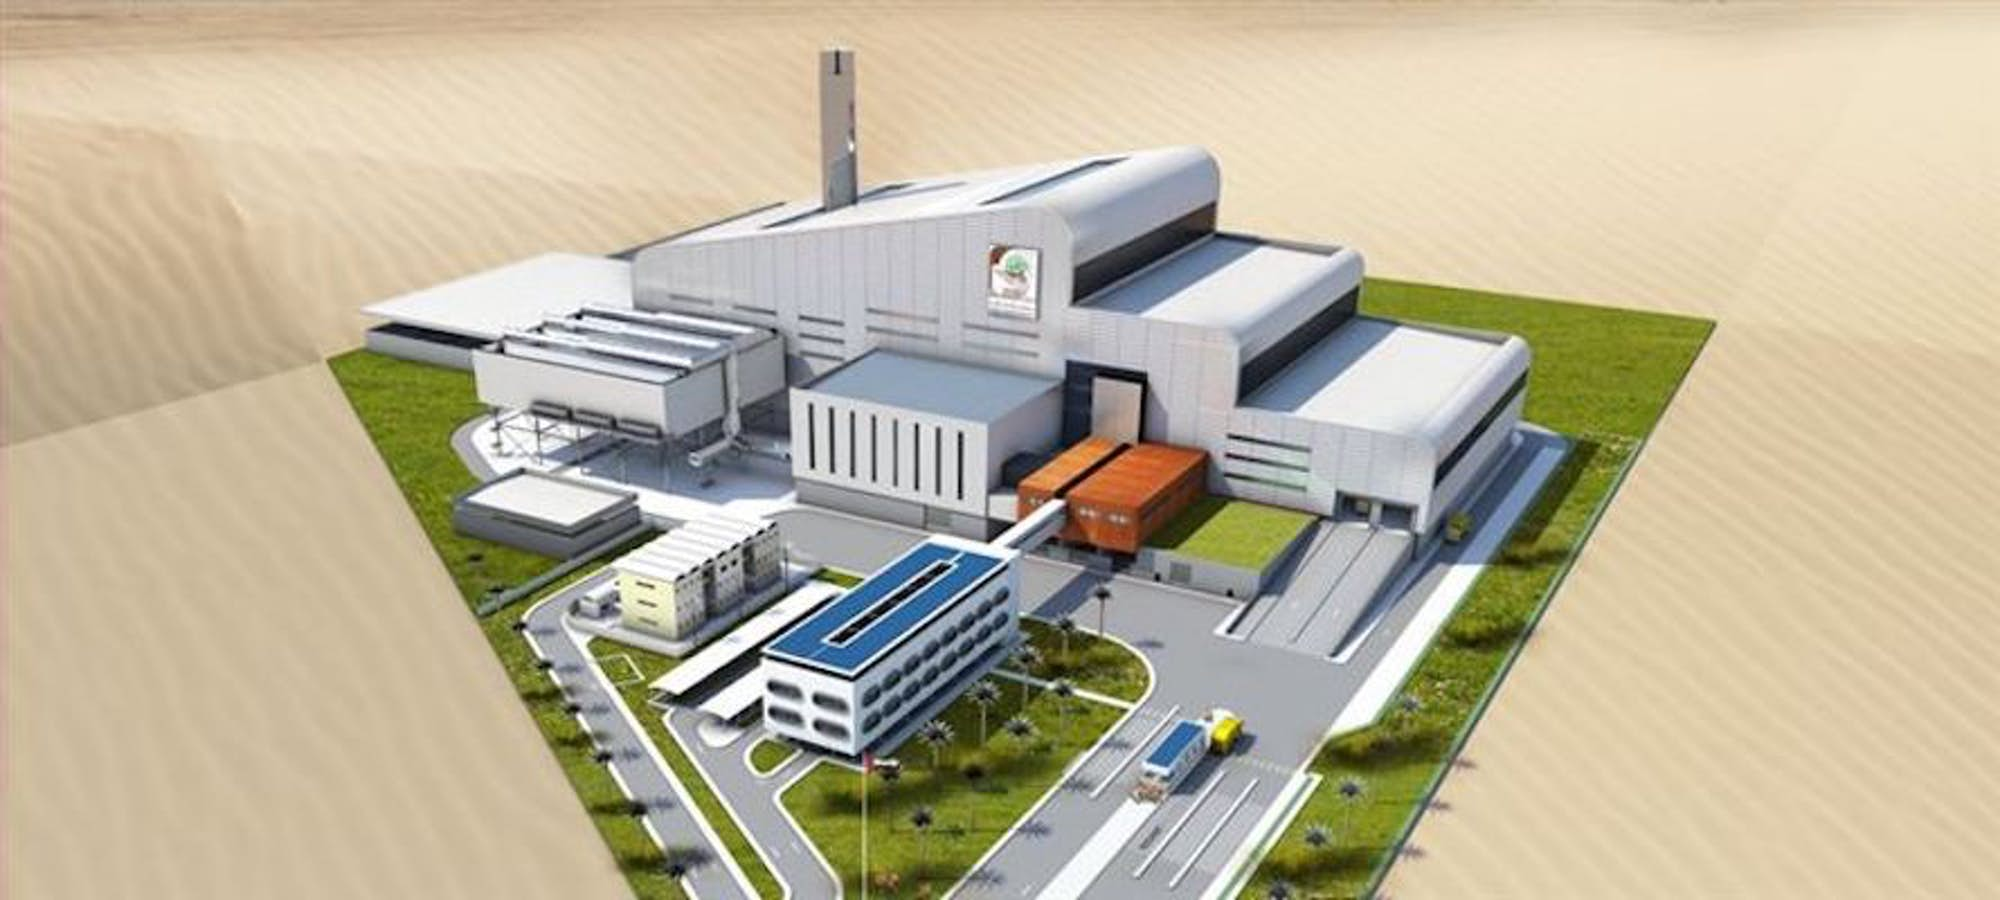 dubai-waste-to-energy-plant-2